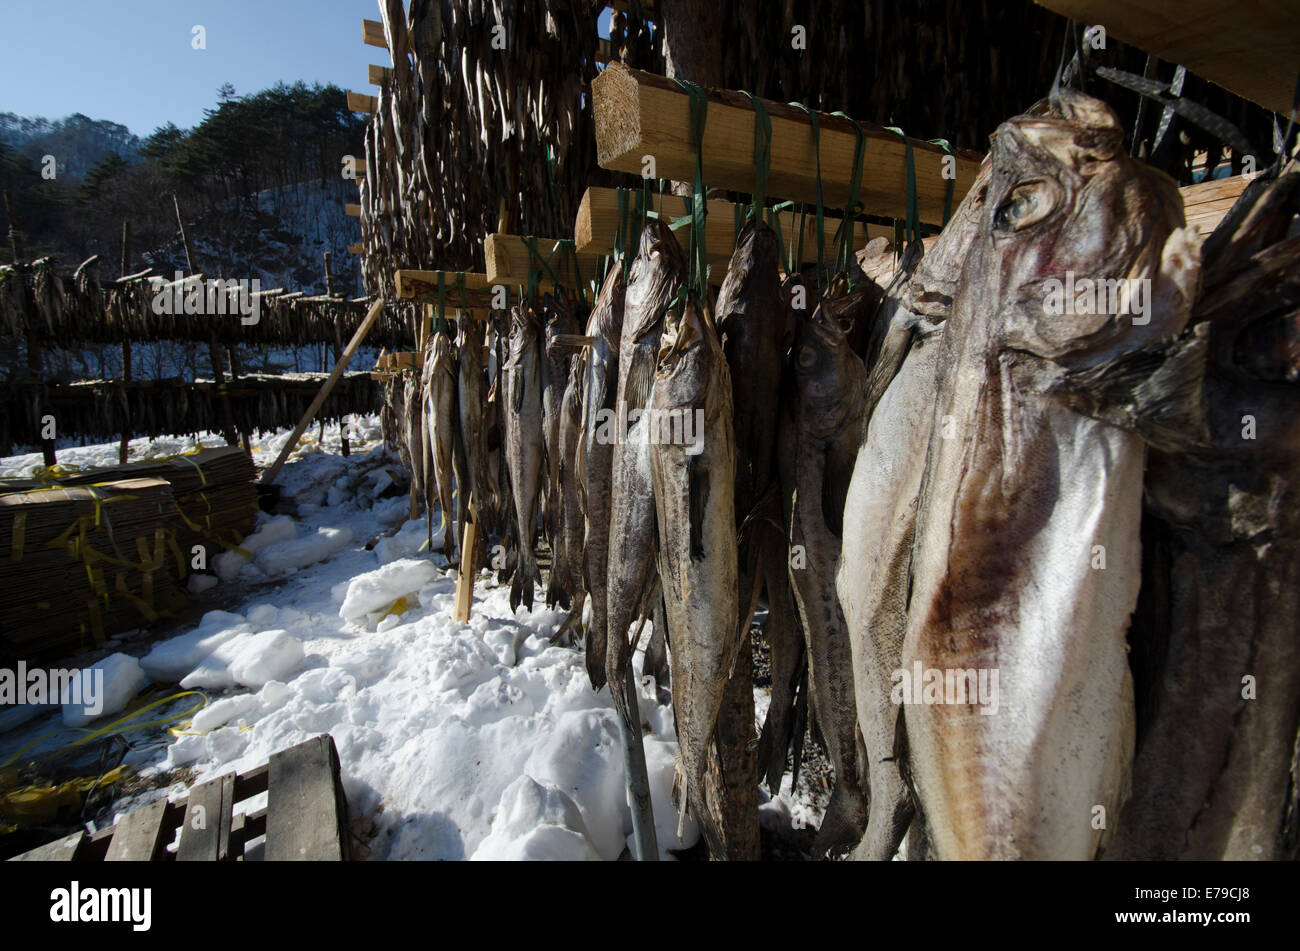 Drying pollack on the mountainside in winter. - Stock Image